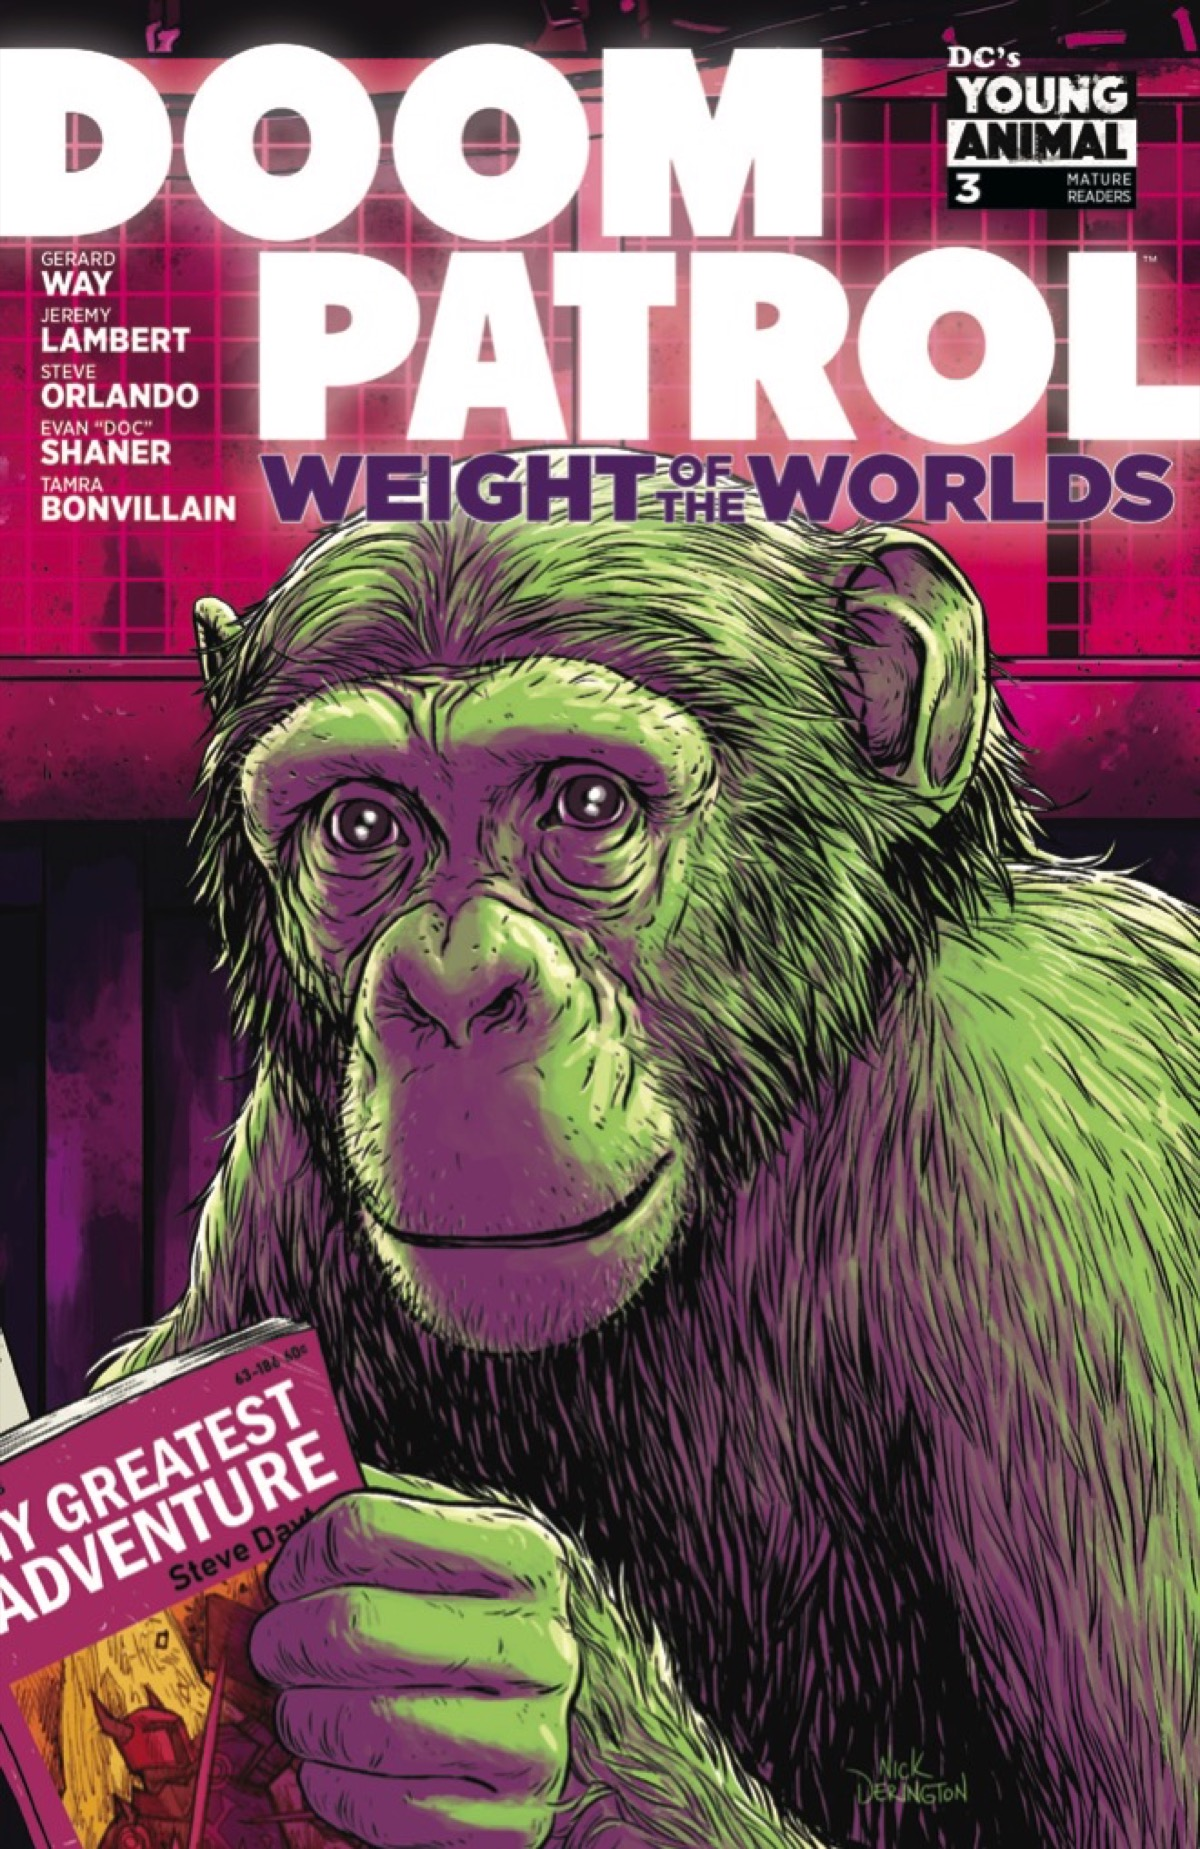 A 2031 Facsimile Edition in This EXCLUSIVE Doom Patrol: Weight of the Worlds #3 Preview